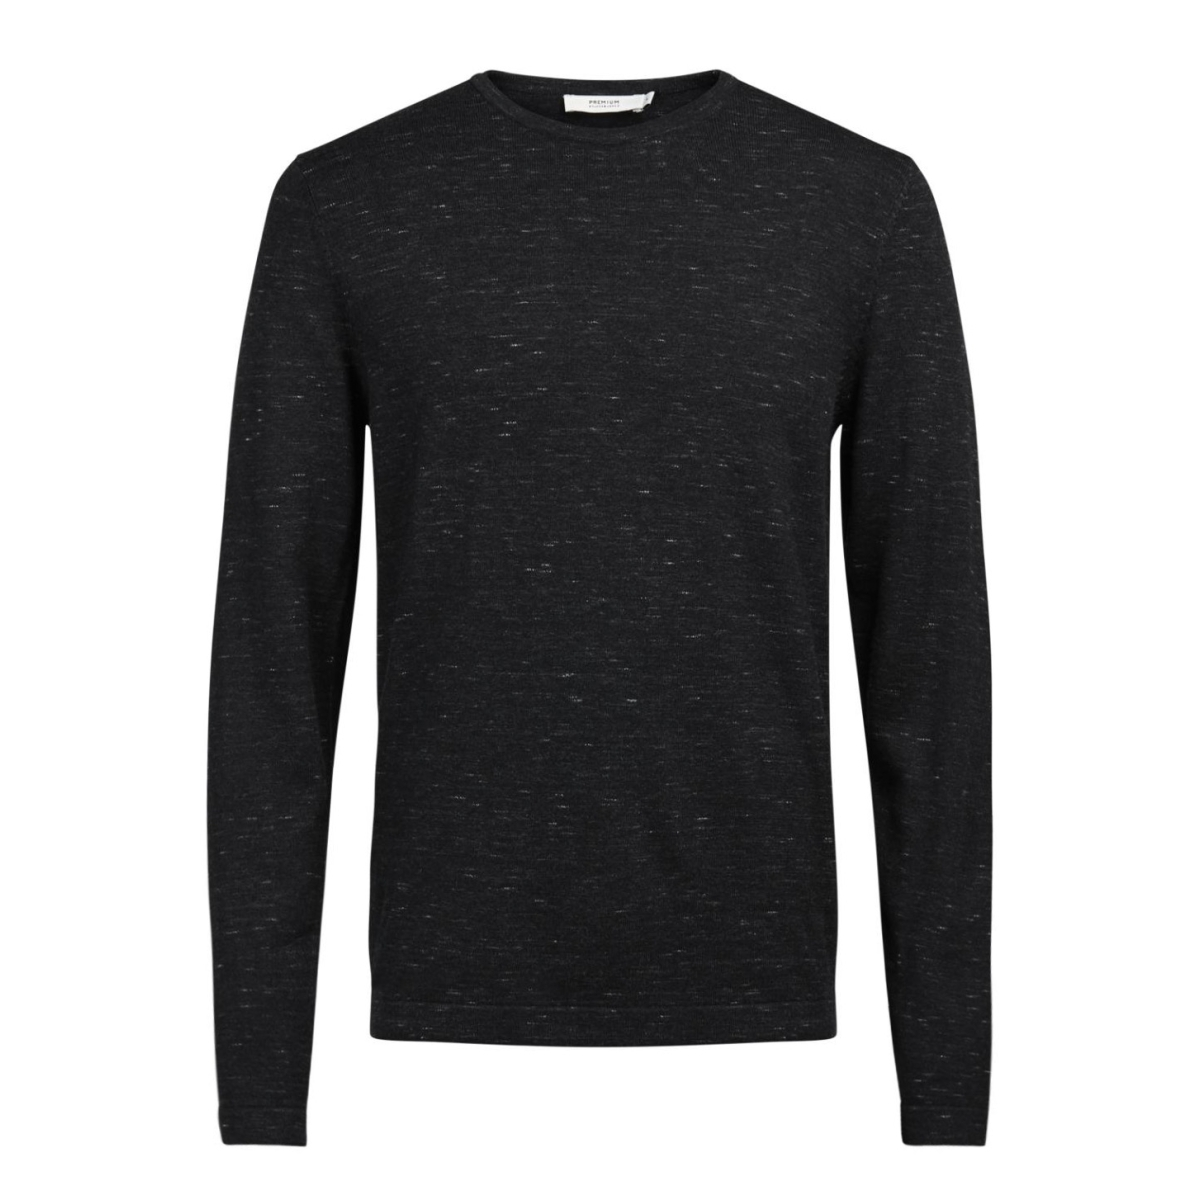 jprmikey knit crew neck 12123552 jack & jones trui black/melange